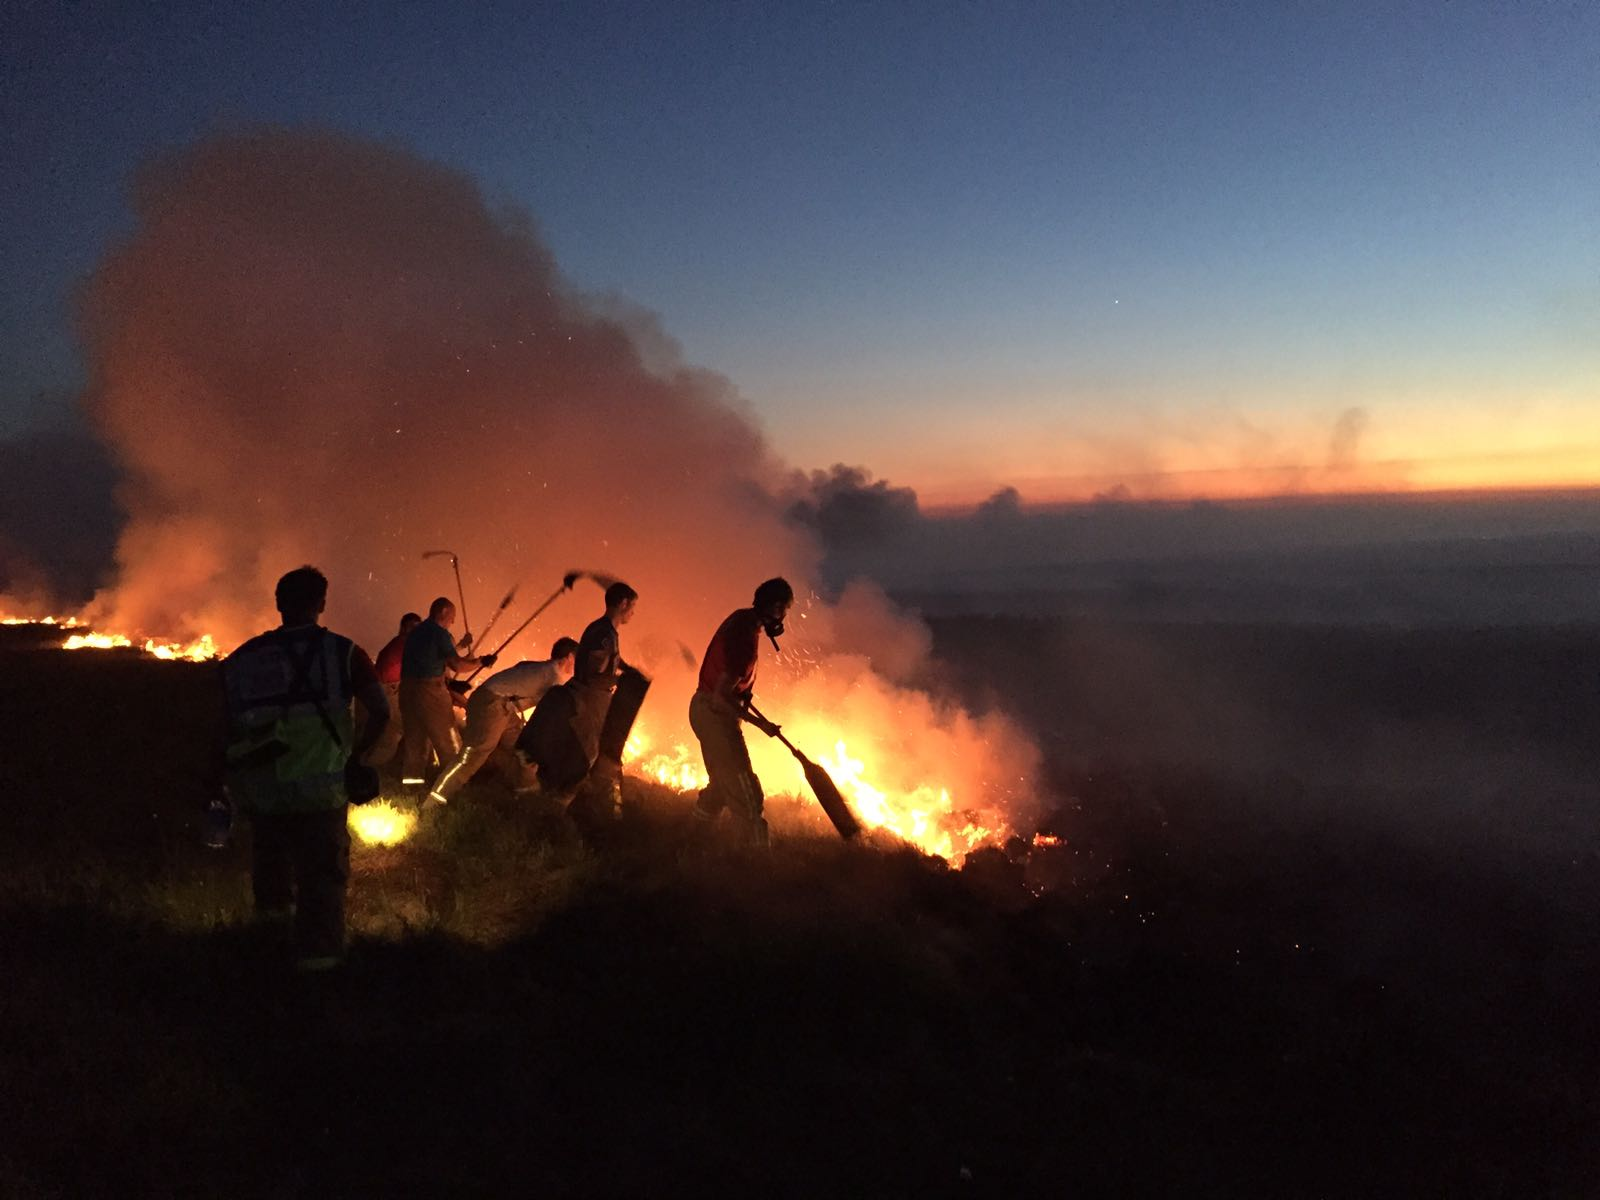 Firefighters at Winter Hill